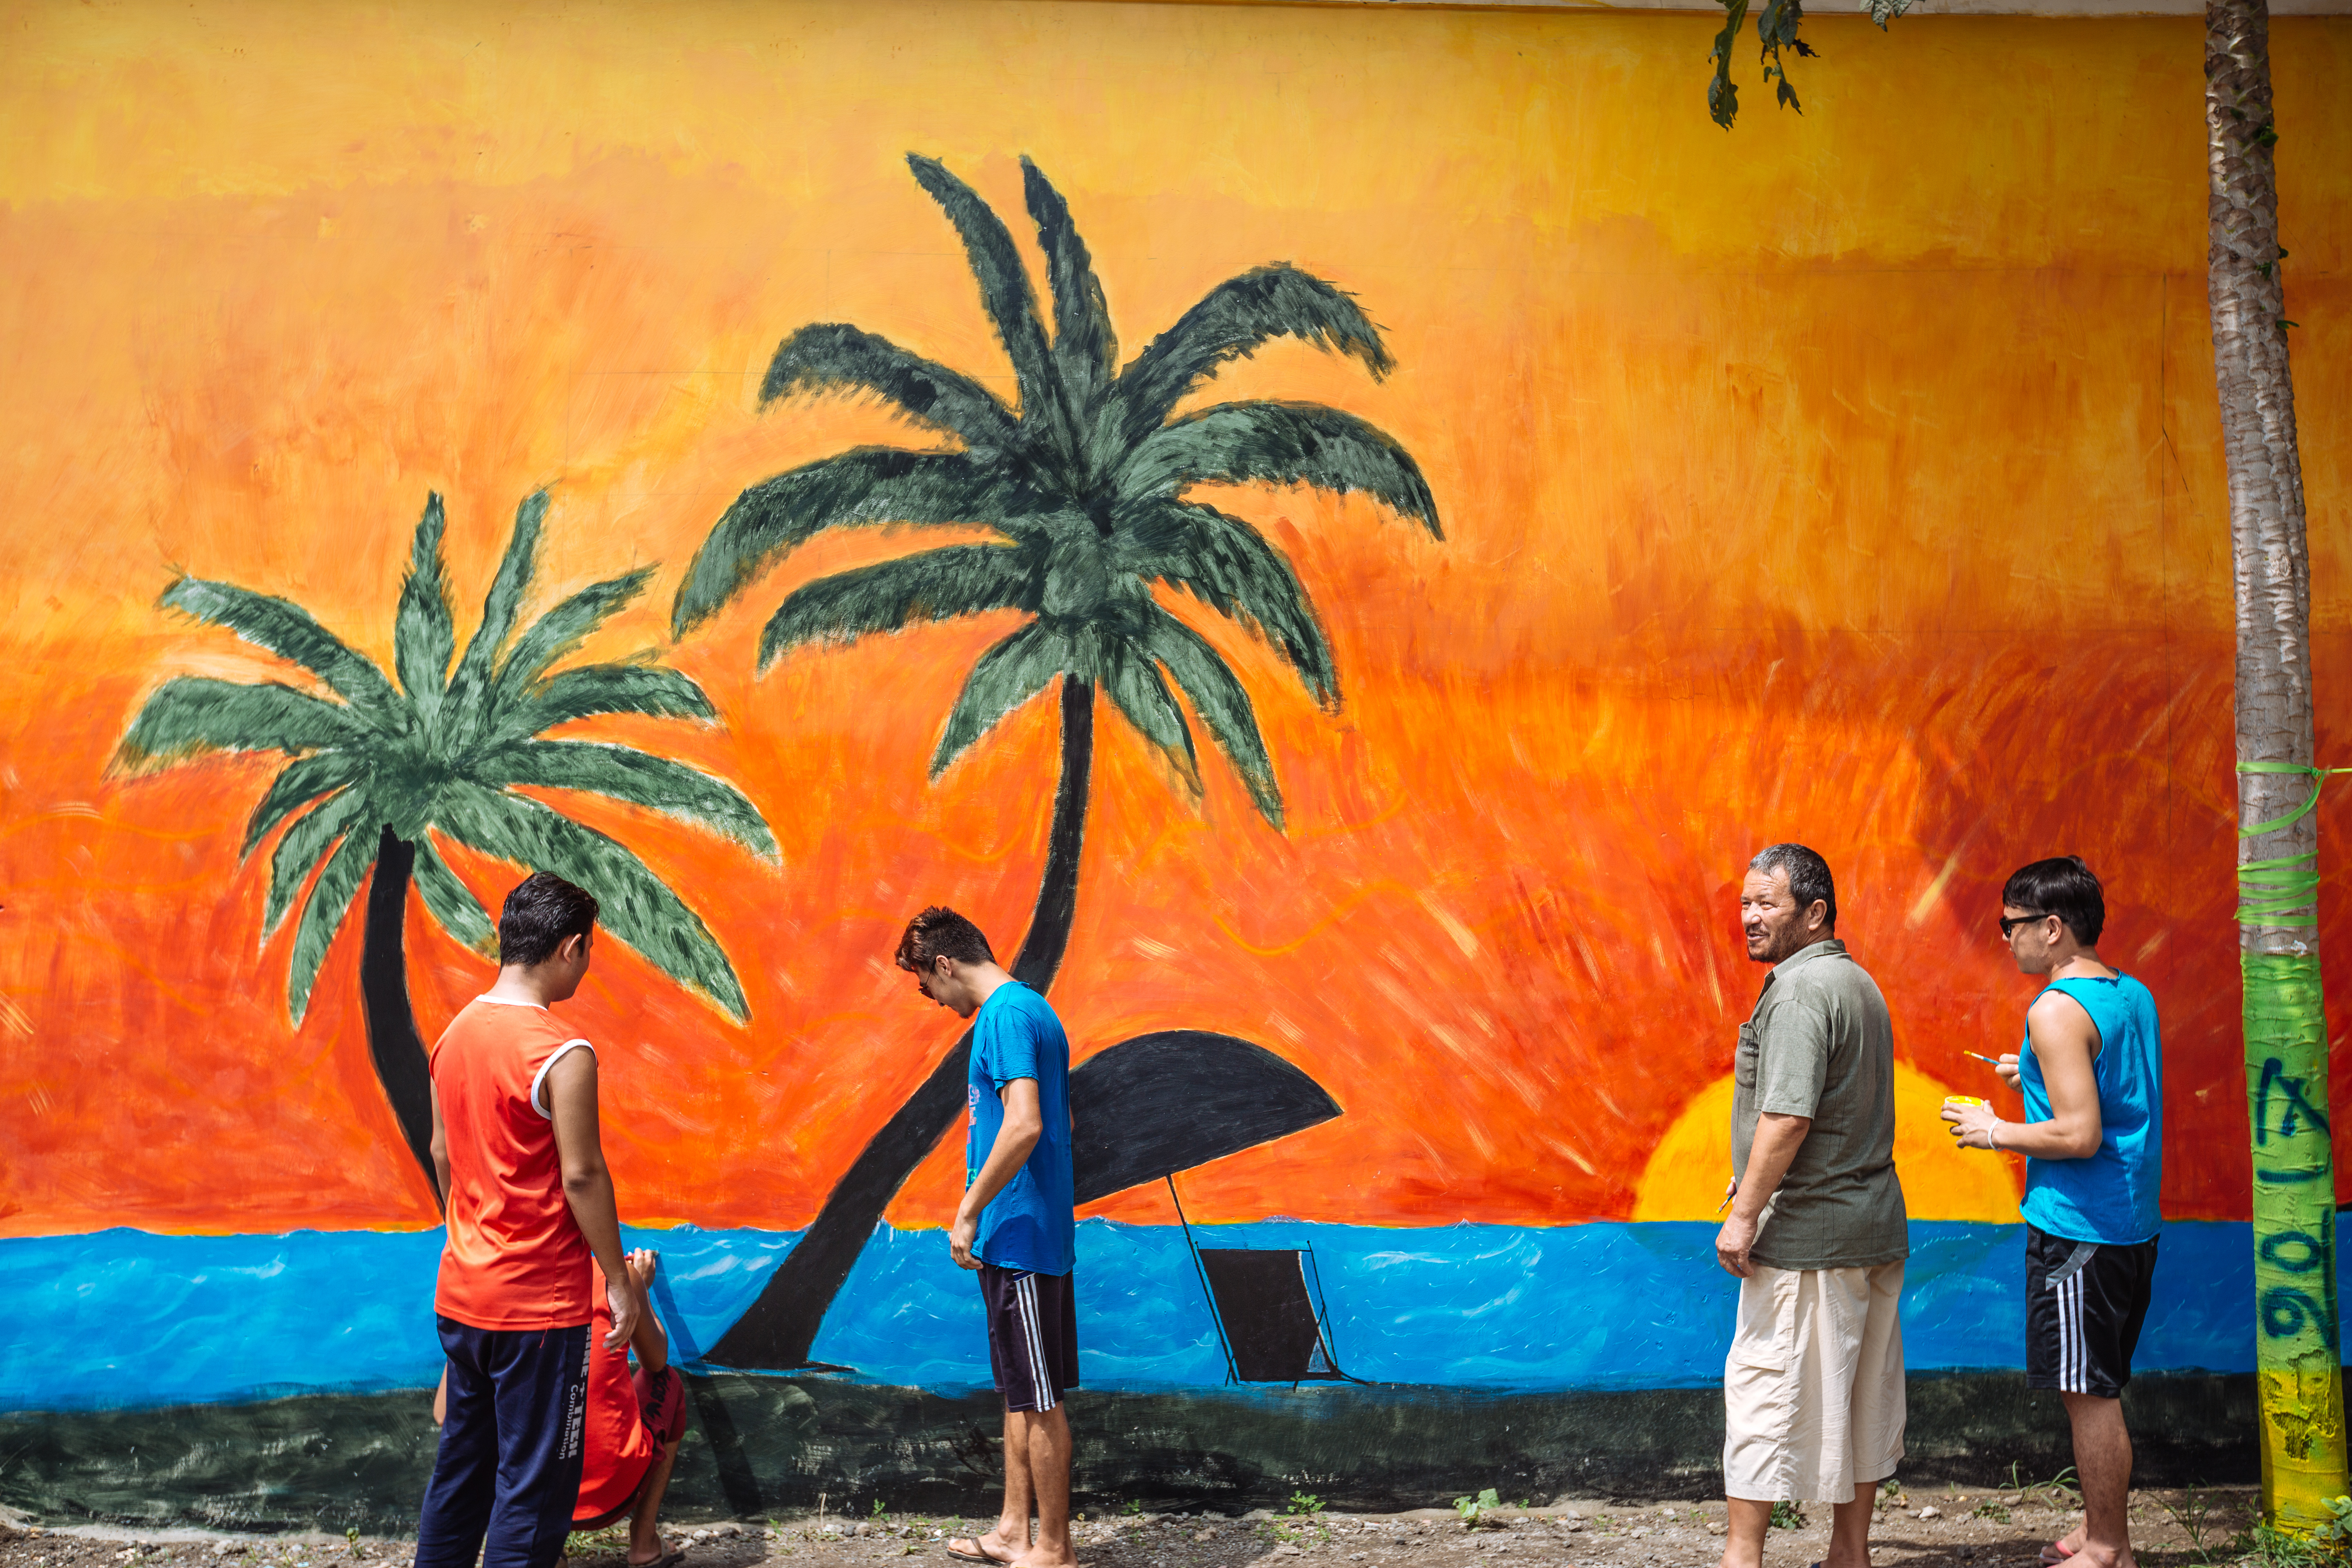 Refugees take time and make a mural within the detention centre as part of a social cohesion activity. Until the day comes for them to be resettled, they try to keep their spirits up through various recreational activities.